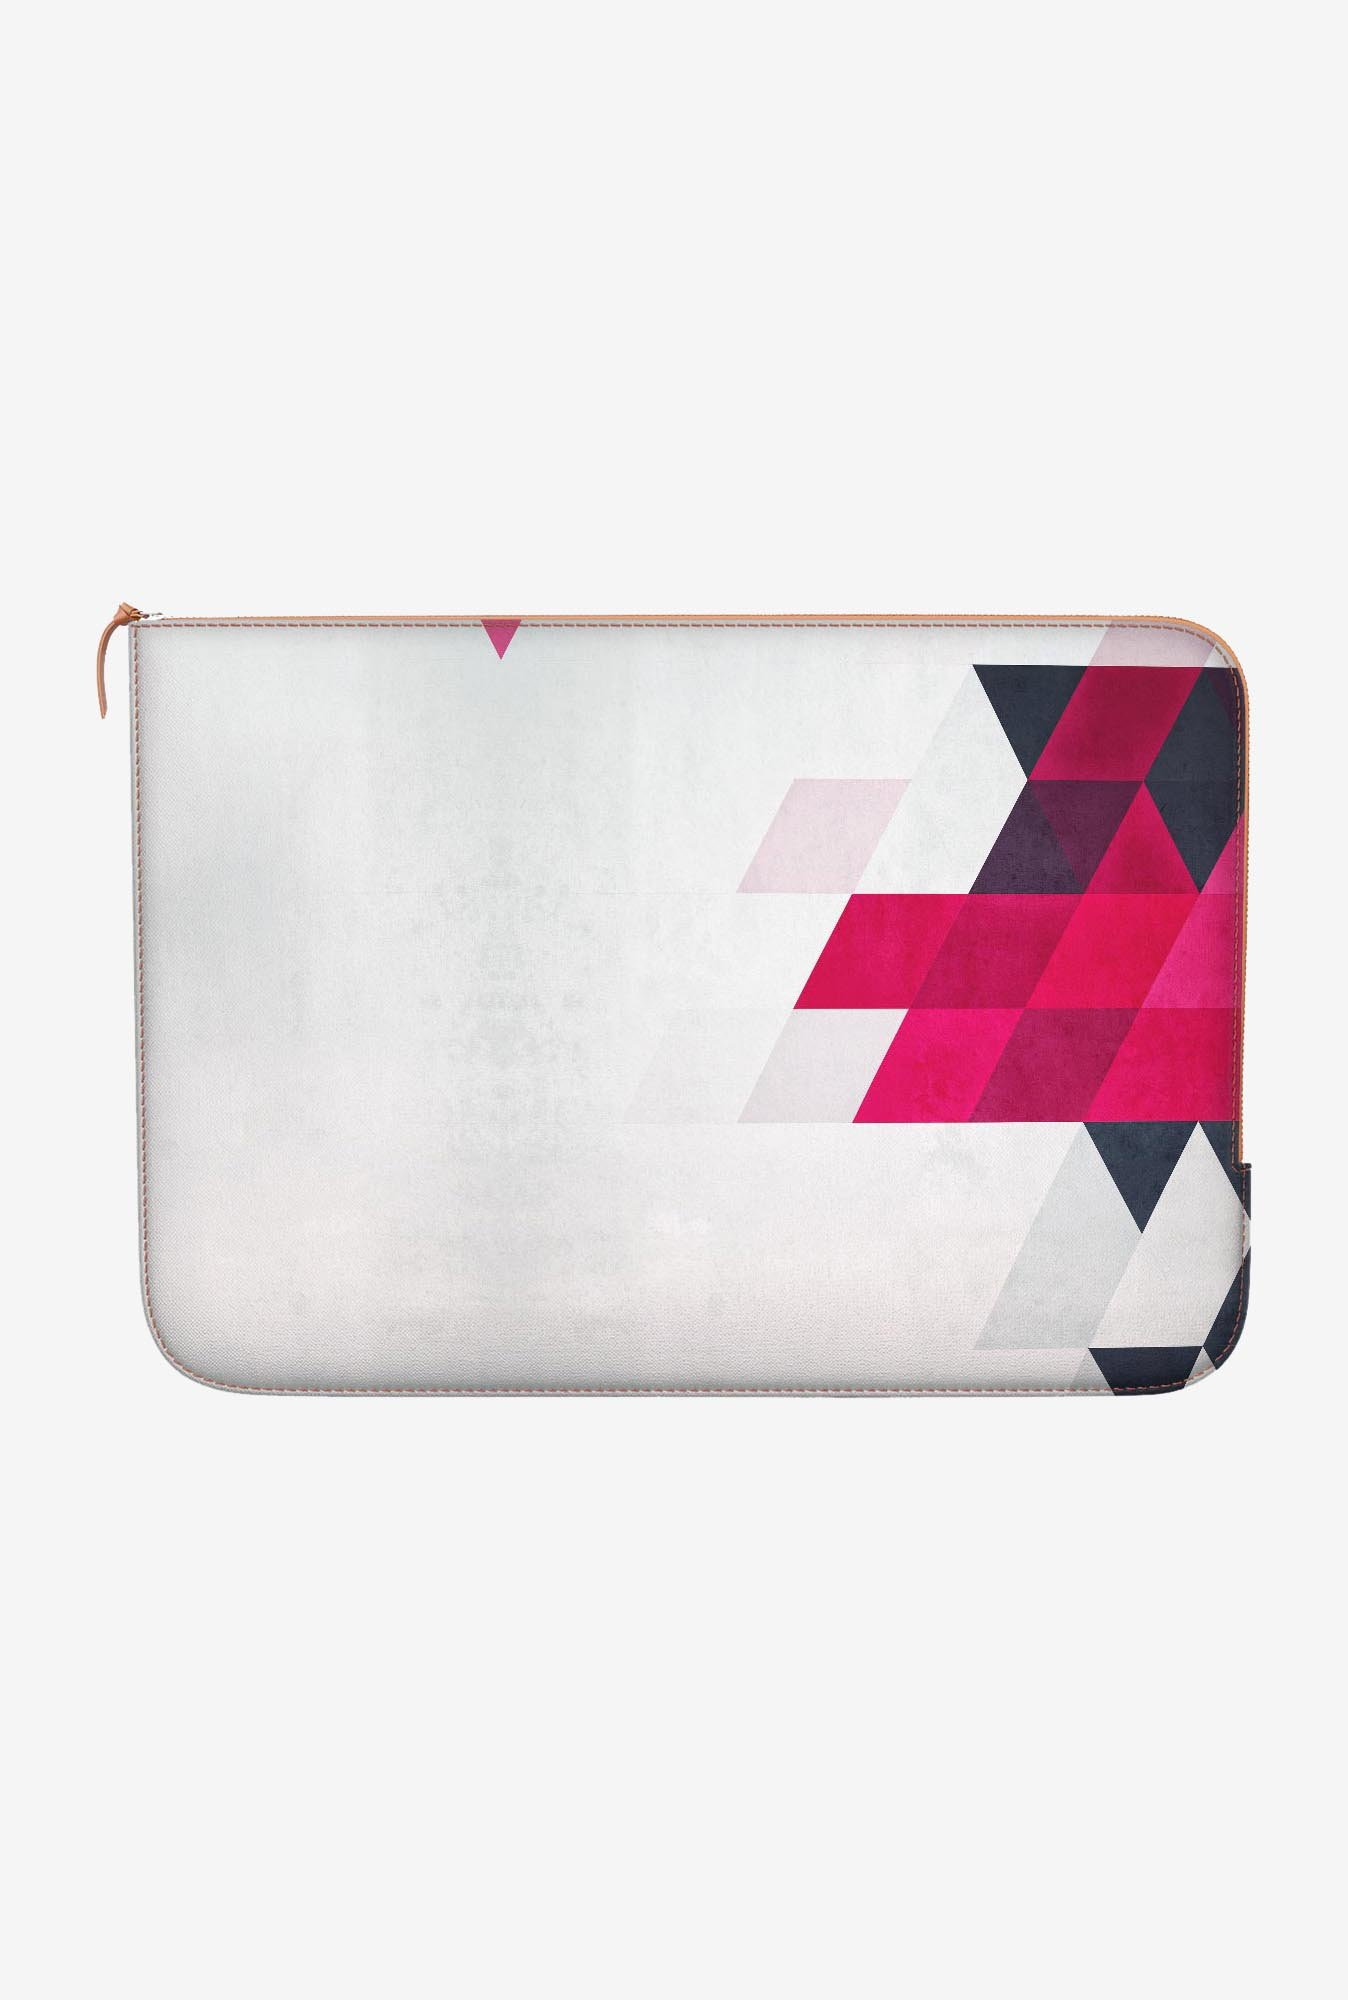 "DailyObjects Minimylysse Macbook Pro 15"" Zippered Sleeve"